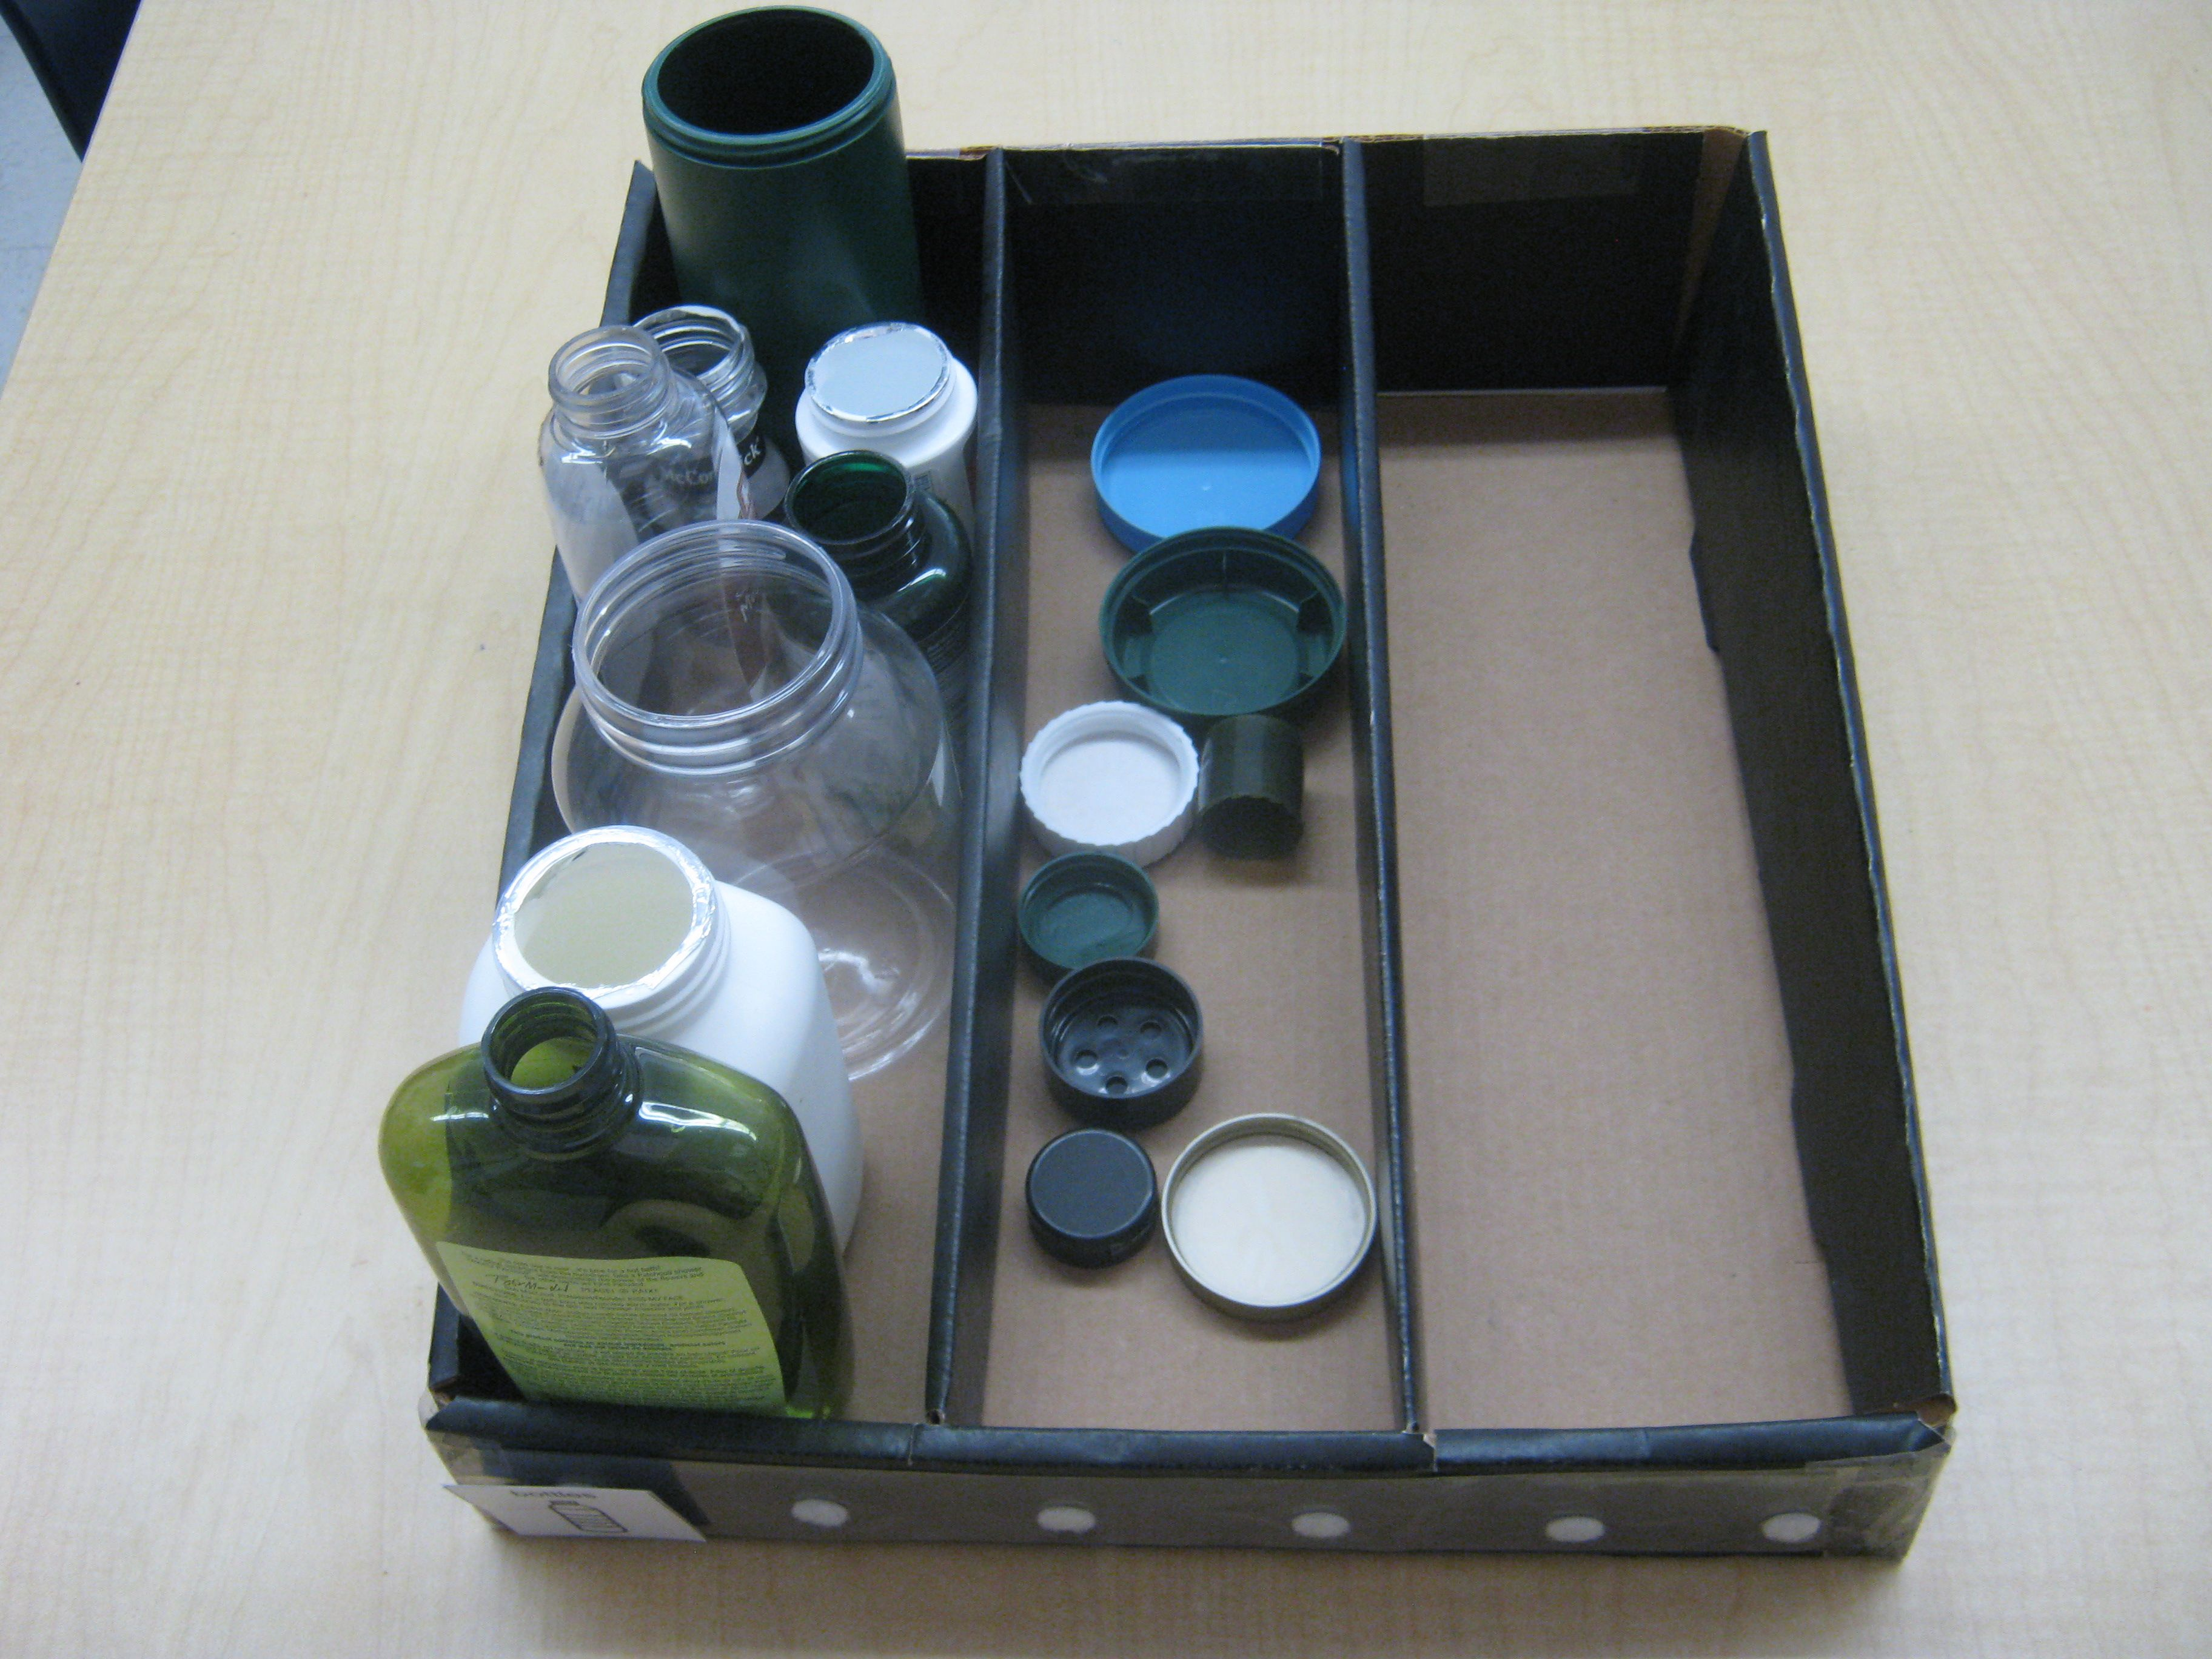 Organized Task Where Students Match And Screw Lids Onto Bottles